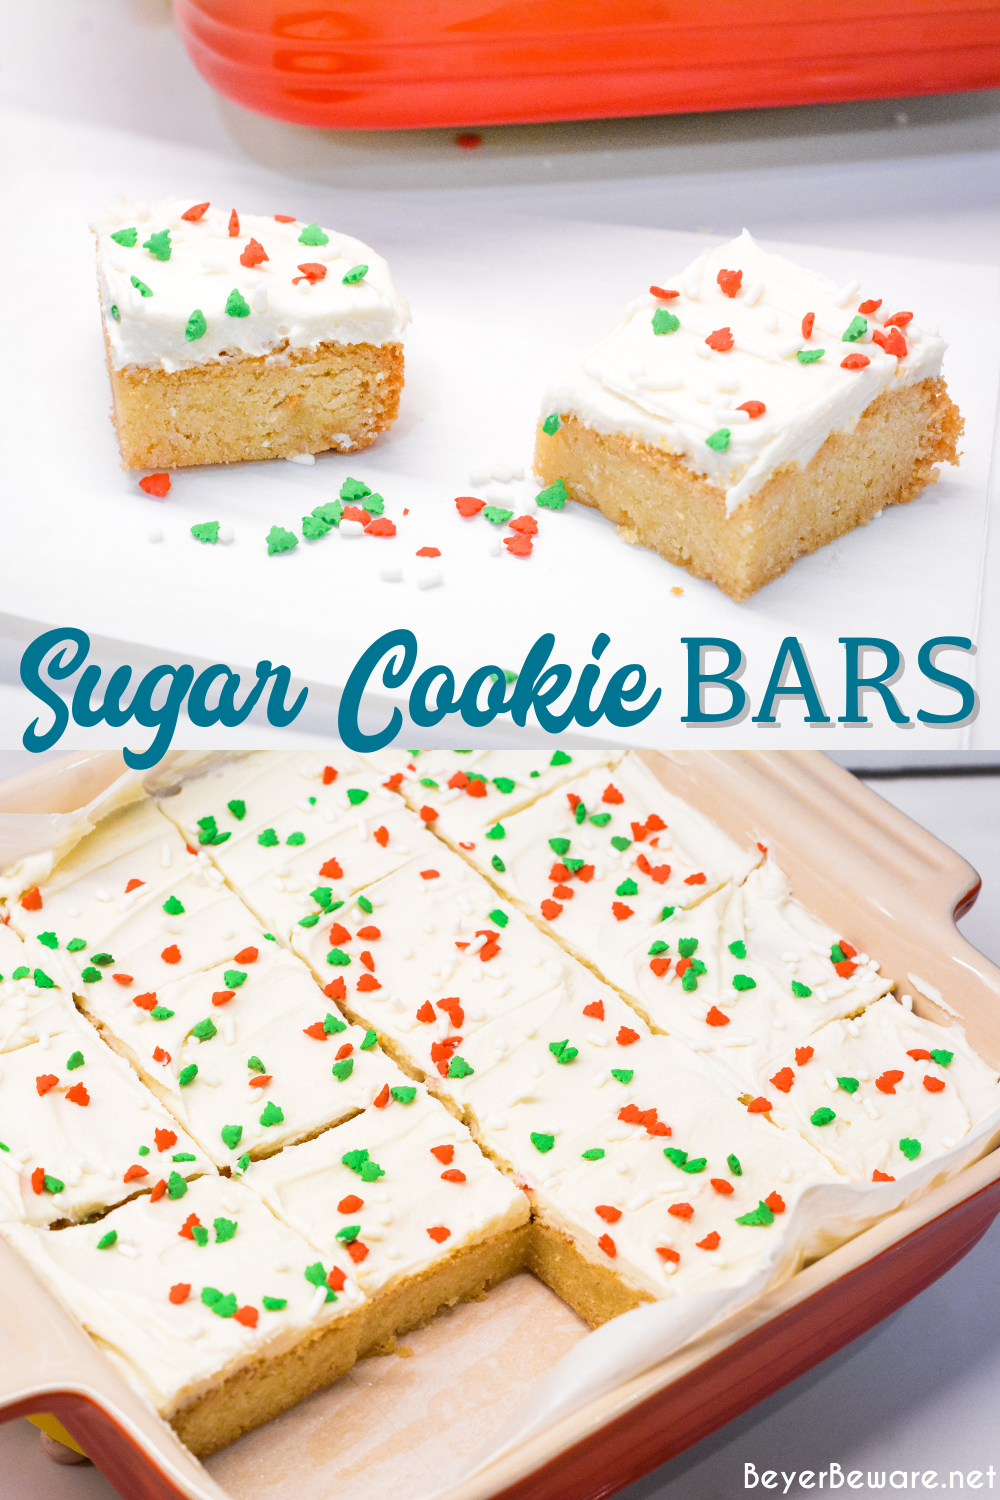 Sugar Cookie Bars are a simple bar cookie made with a package of sugar cookie mix, butter, and eggs topped with a homemade Lofthouse cookie type icing for a quick and simple treat.